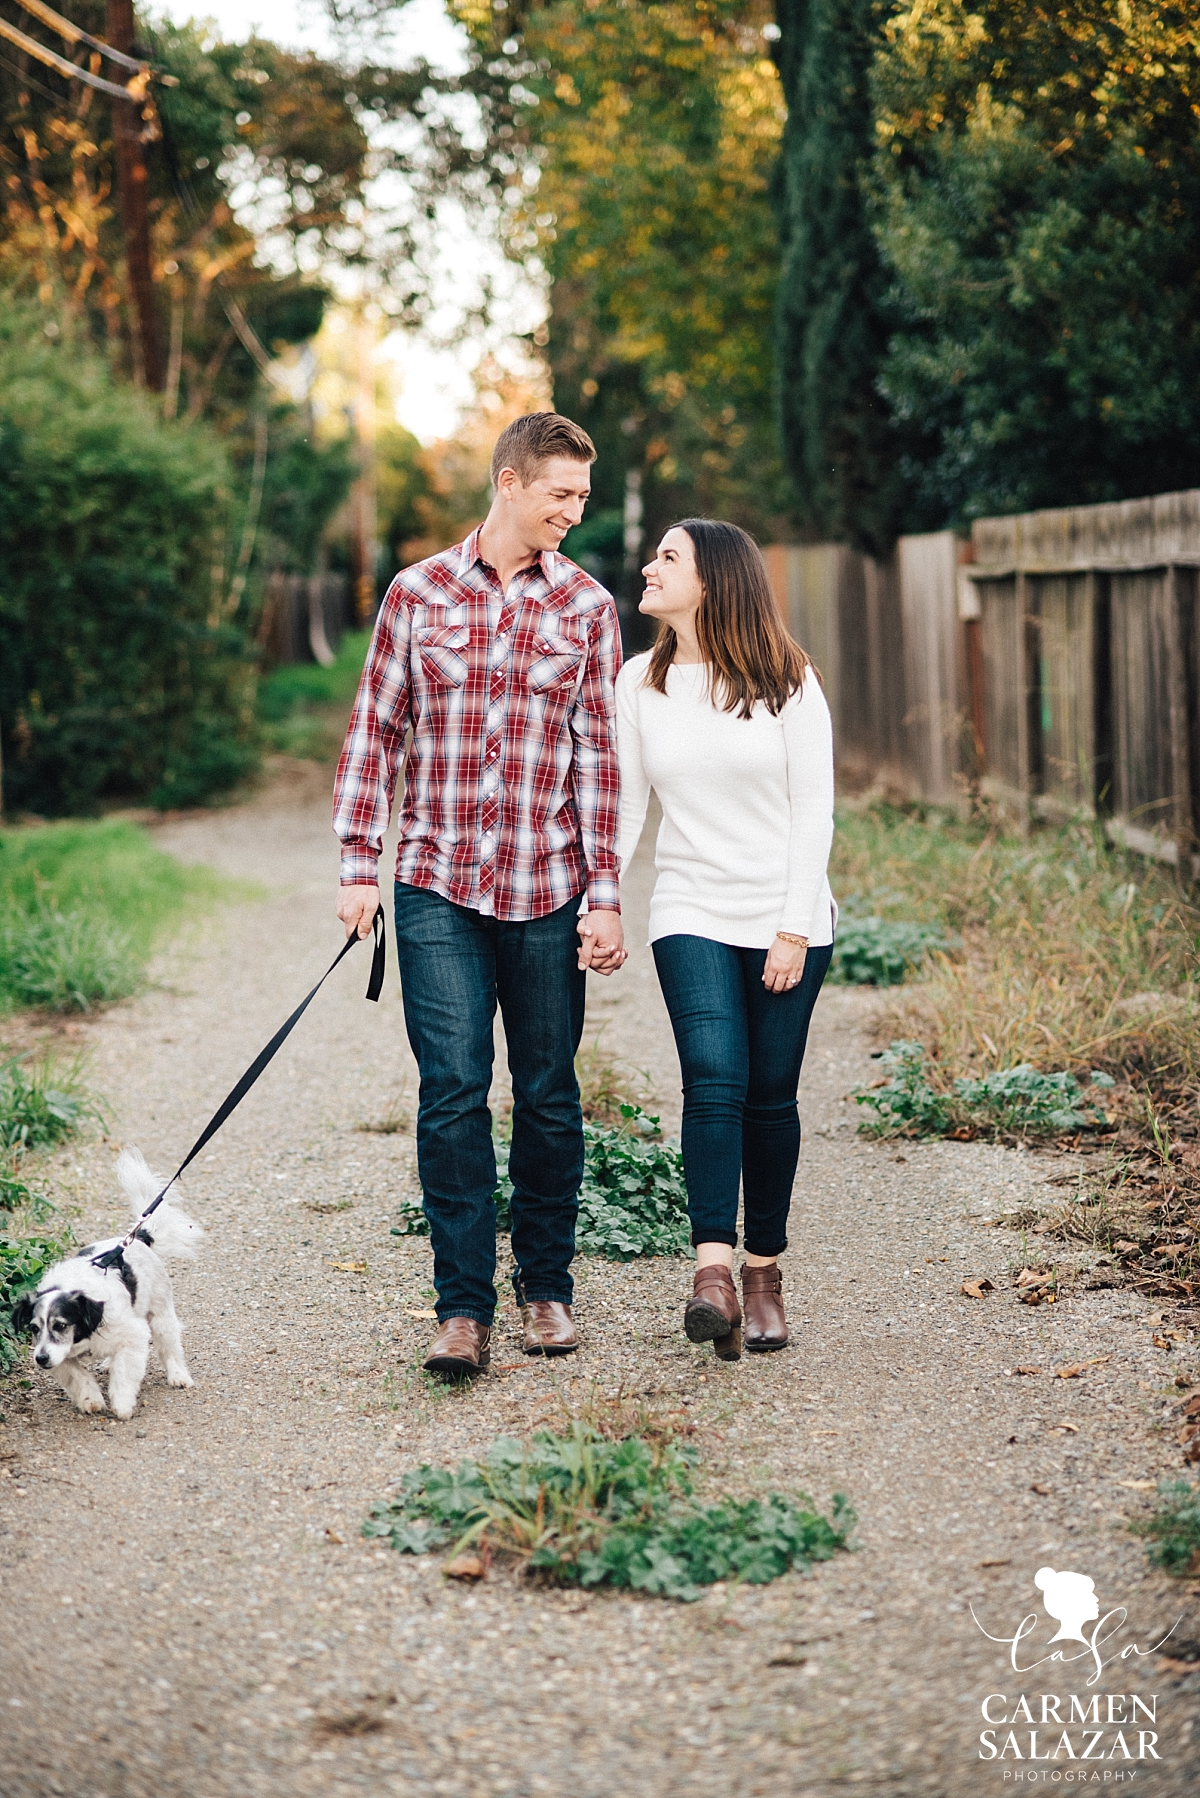 Pet-friendly Sacramento photographer - Carmen Salazar